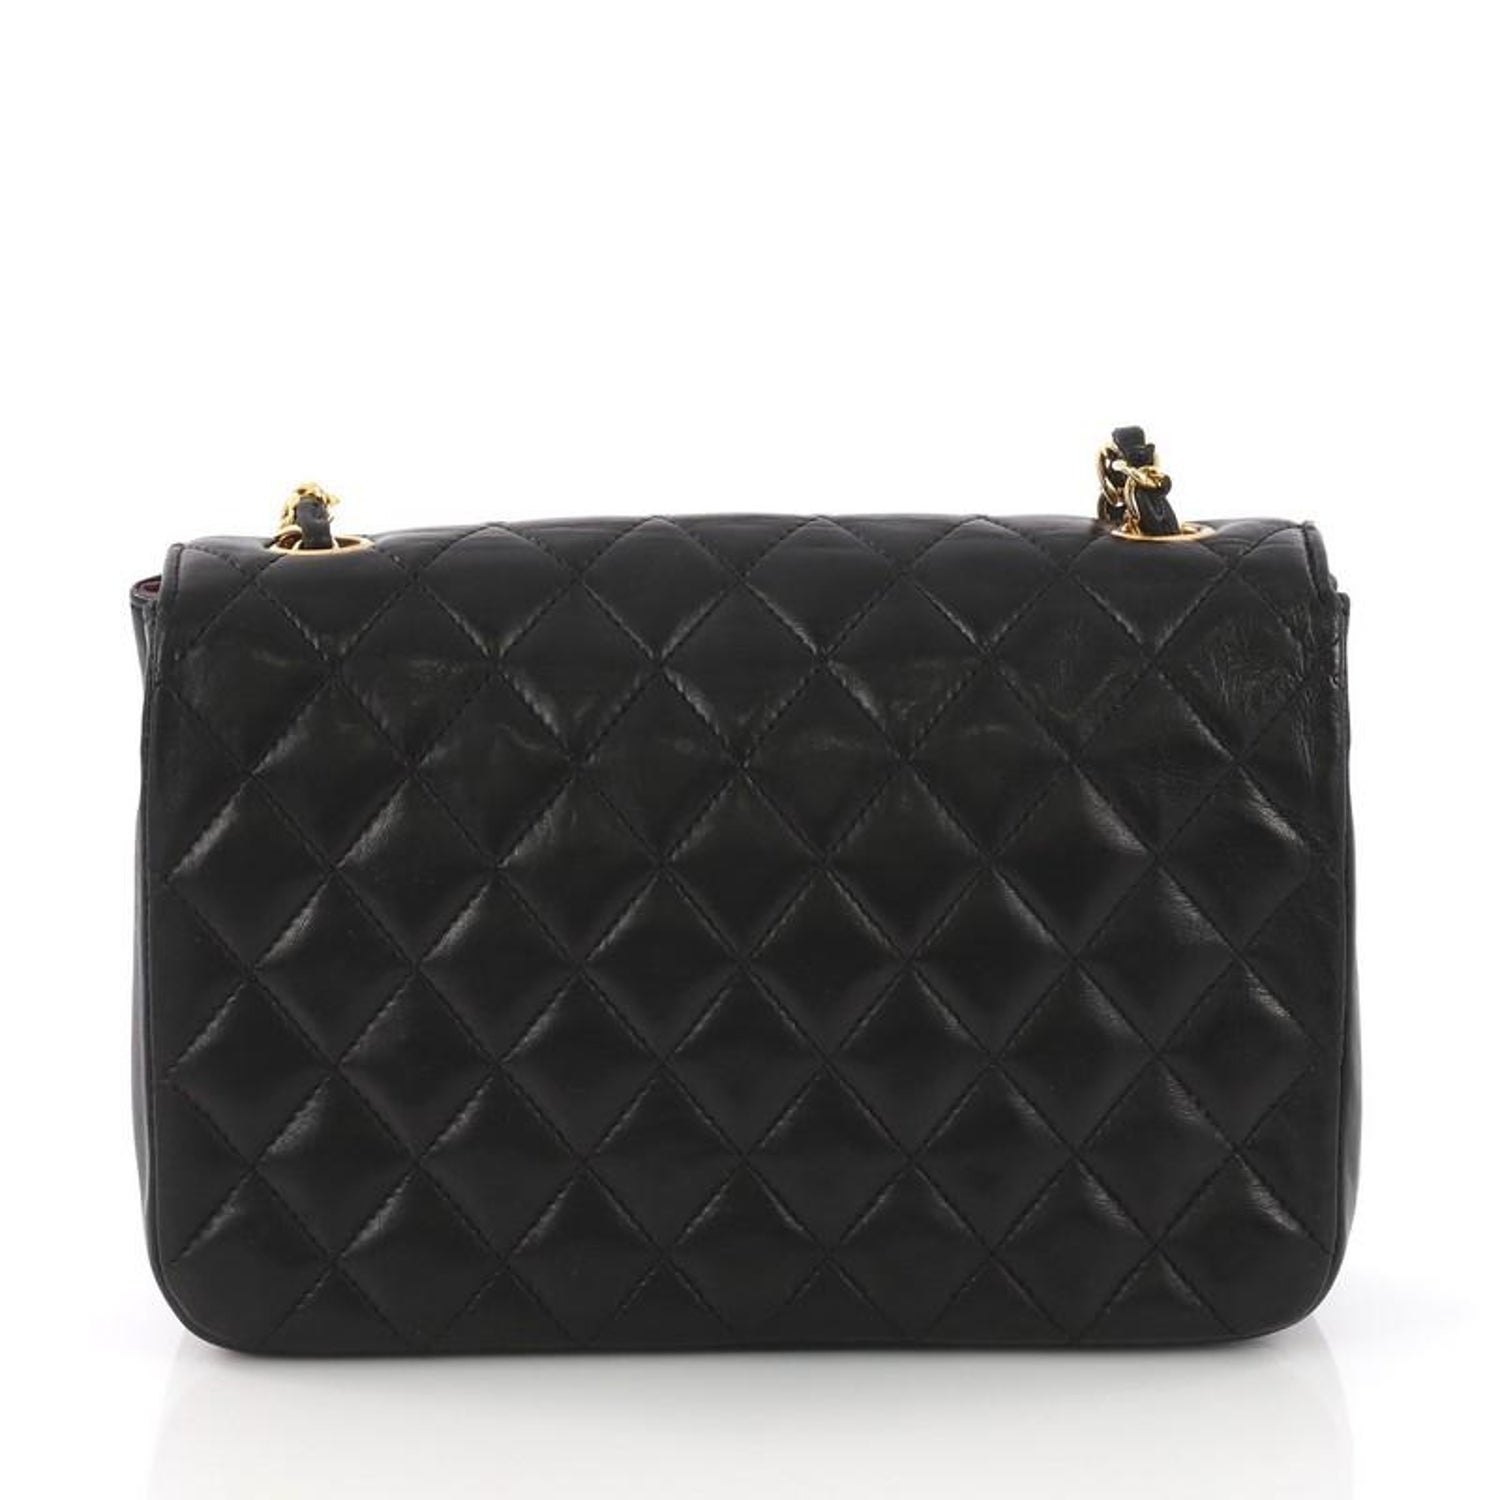 deb945d47408 Chanel Vintage Round Flap Bag Quilted Lambskin Medium at 1stdibs